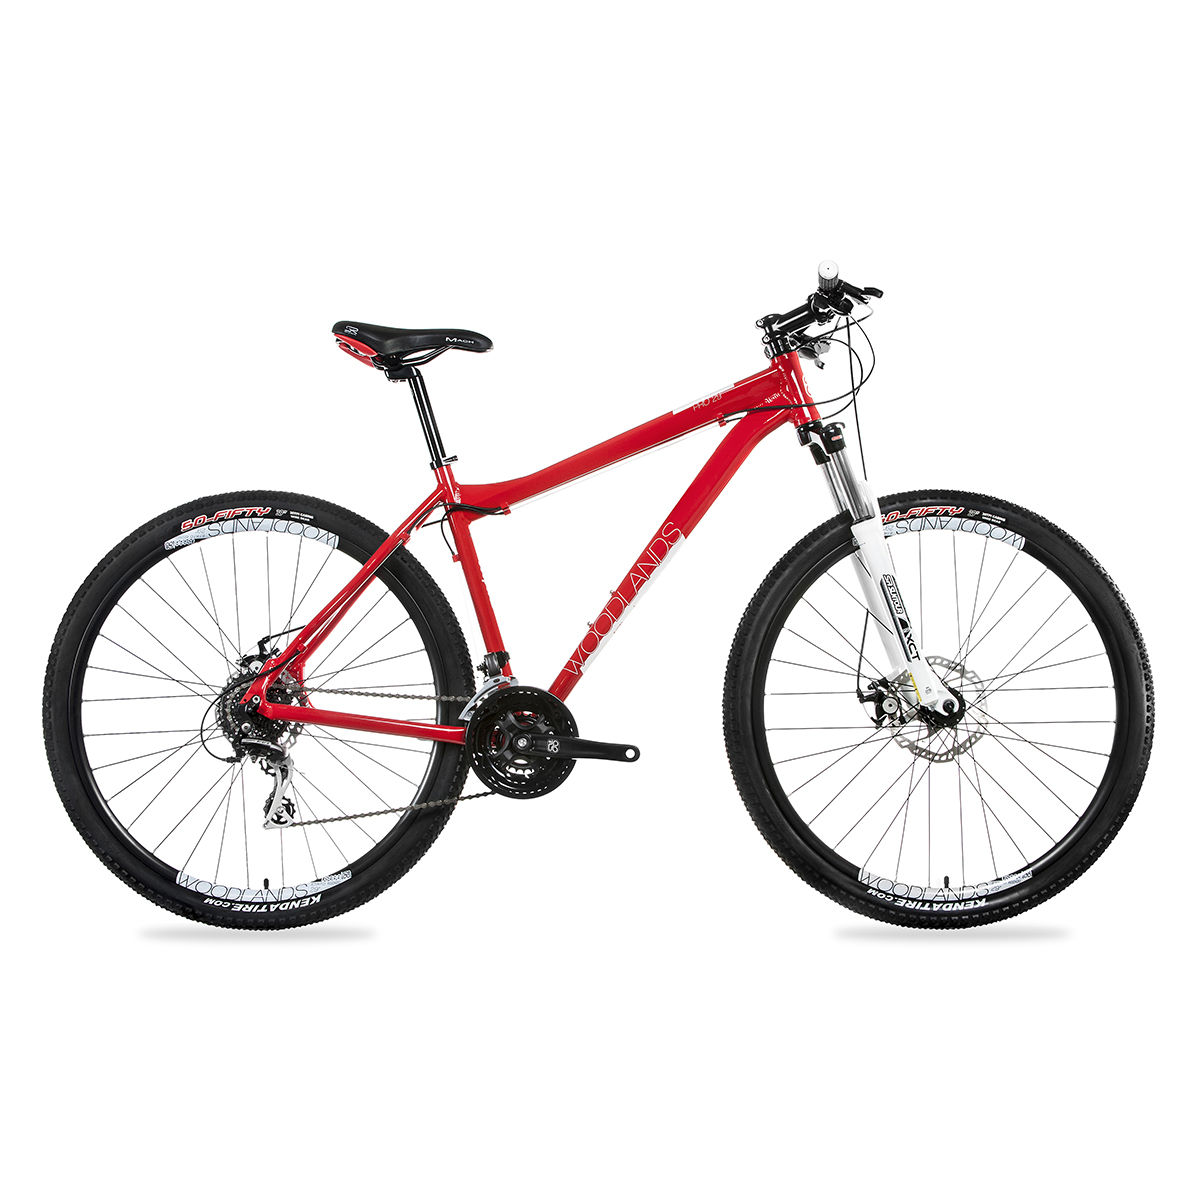 KRP WOODLANDS PRO 29 MTB 2.0 24S MEDIUM PIROS